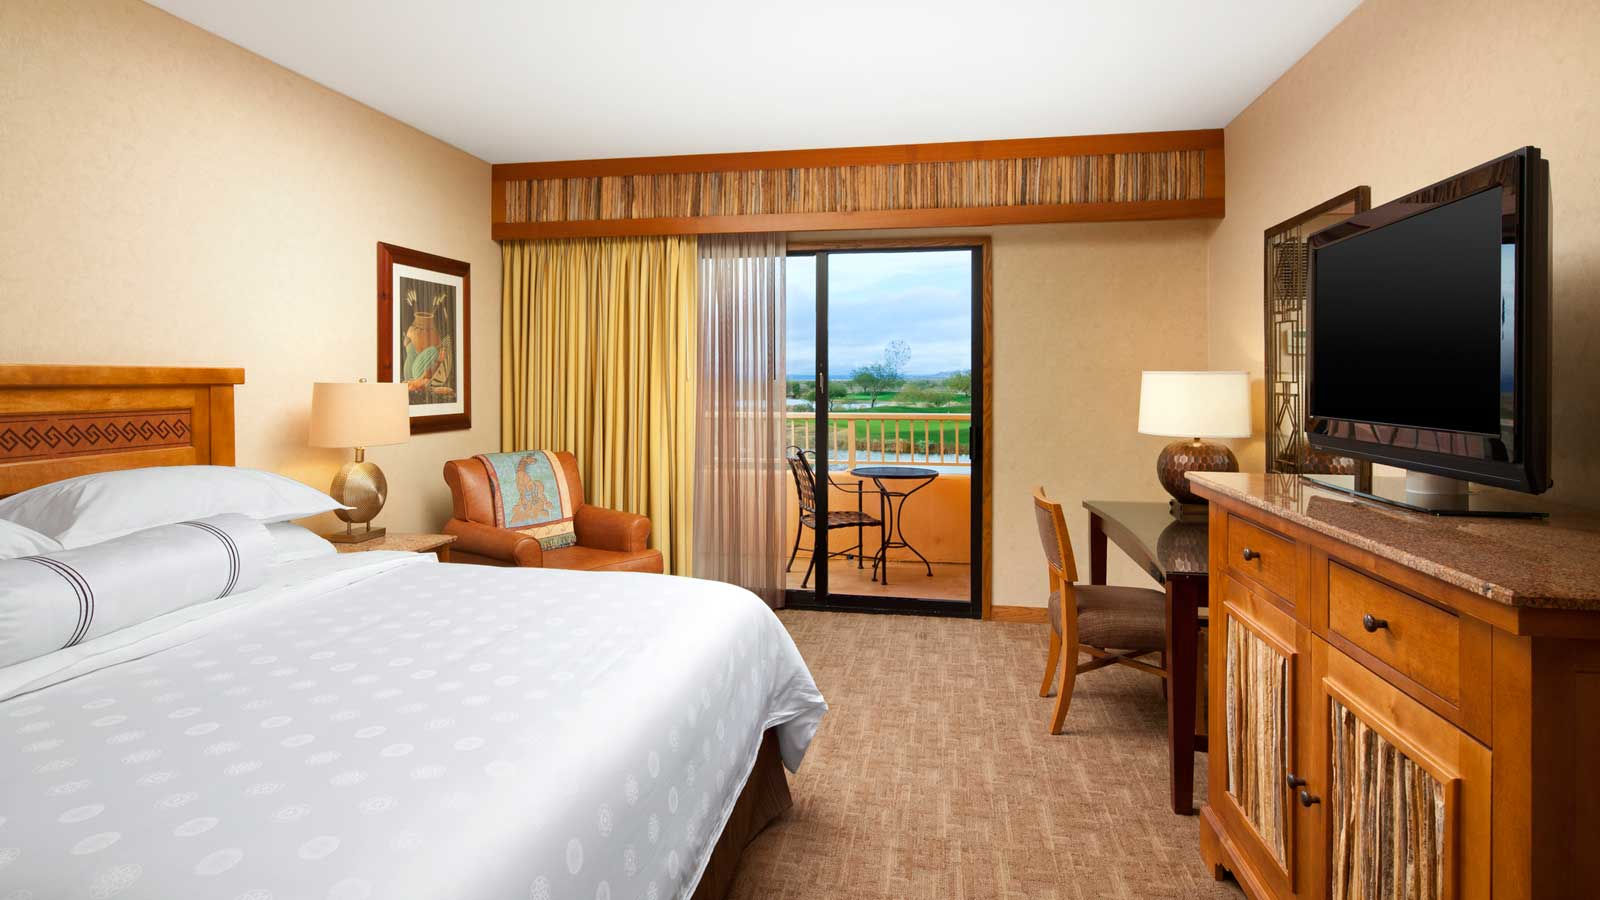 Deluxe Guestroom with golf course or mountain views at the Sheraton Grand at Wild Horse Pass Resort